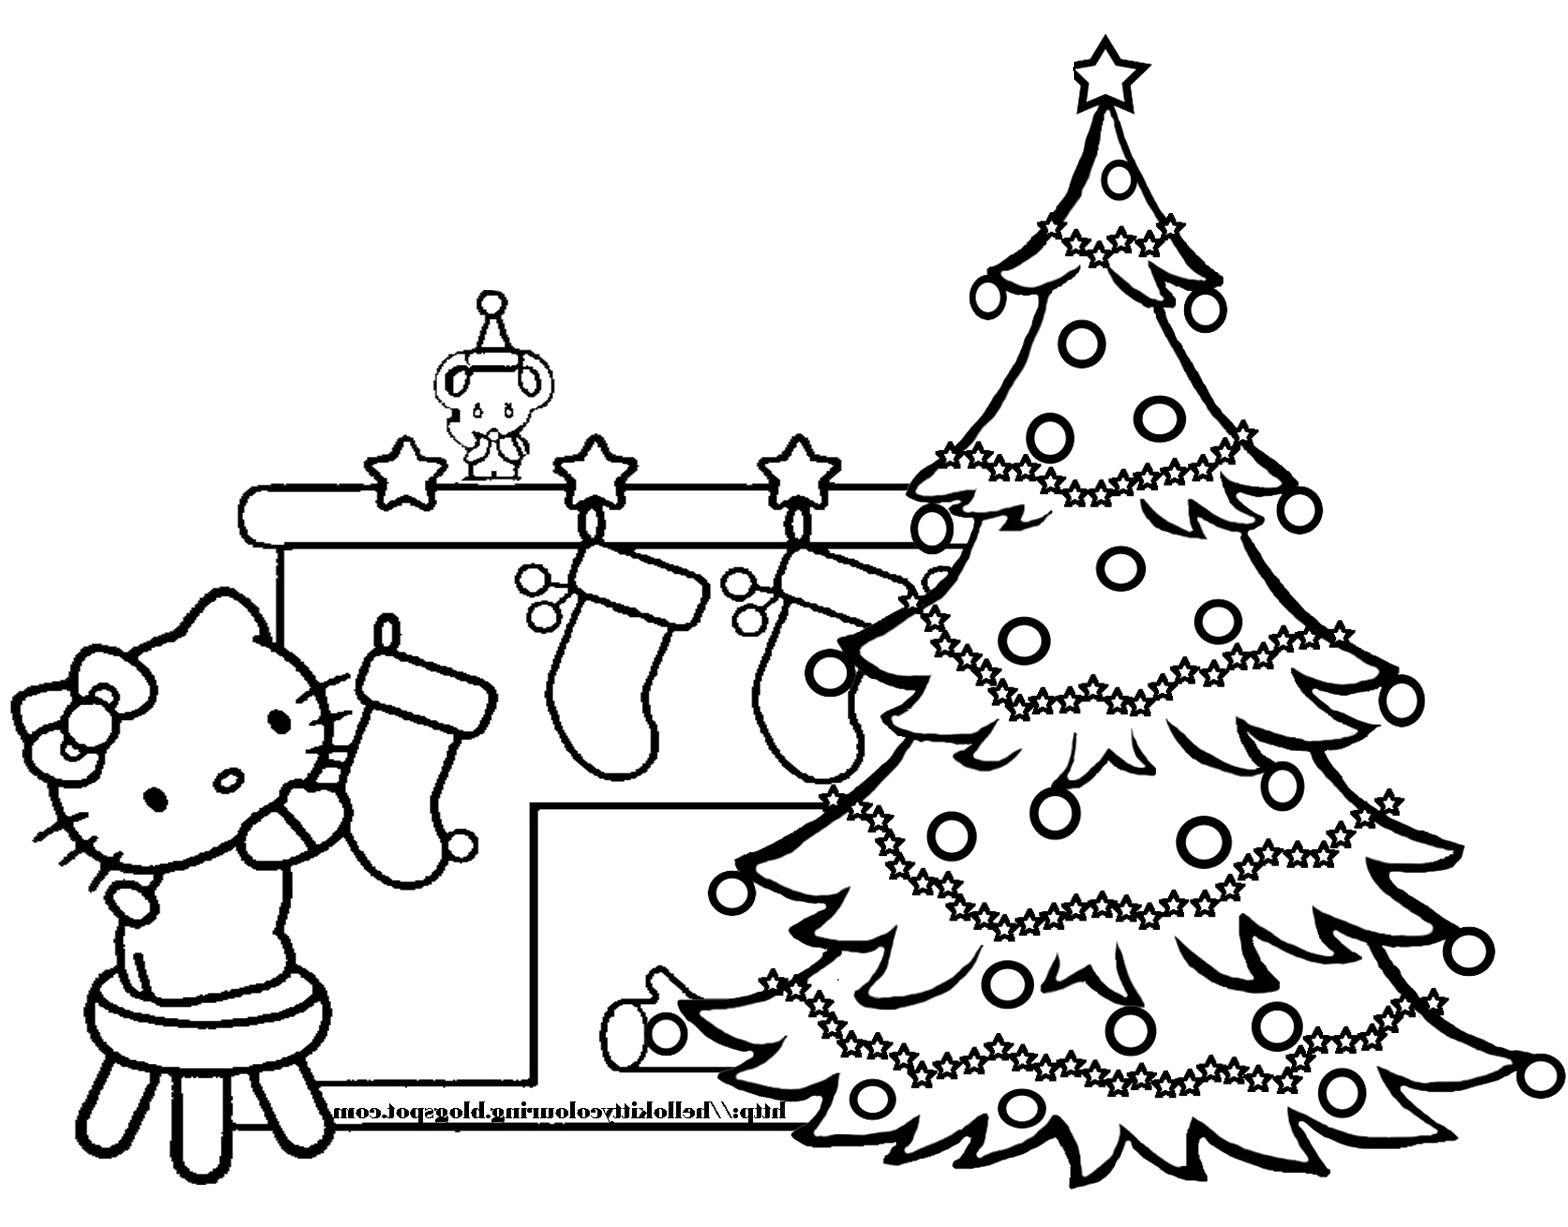 Christmas Tree Images Drawing At Getdrawings Com Free For Personal